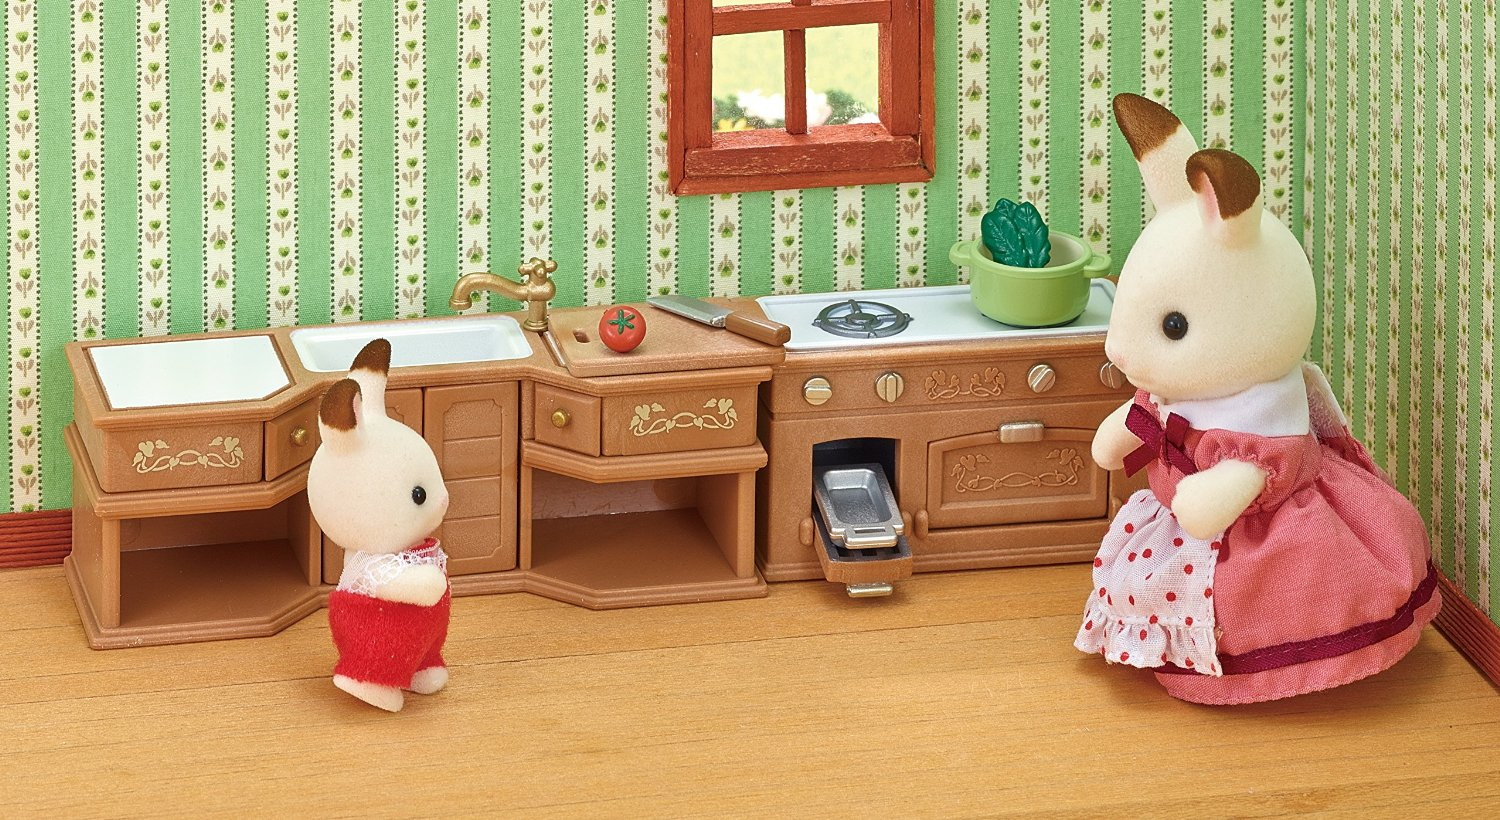 SYLVANIAN FAMILIES KITCHEN STOVE, SINK & COUNTER SET